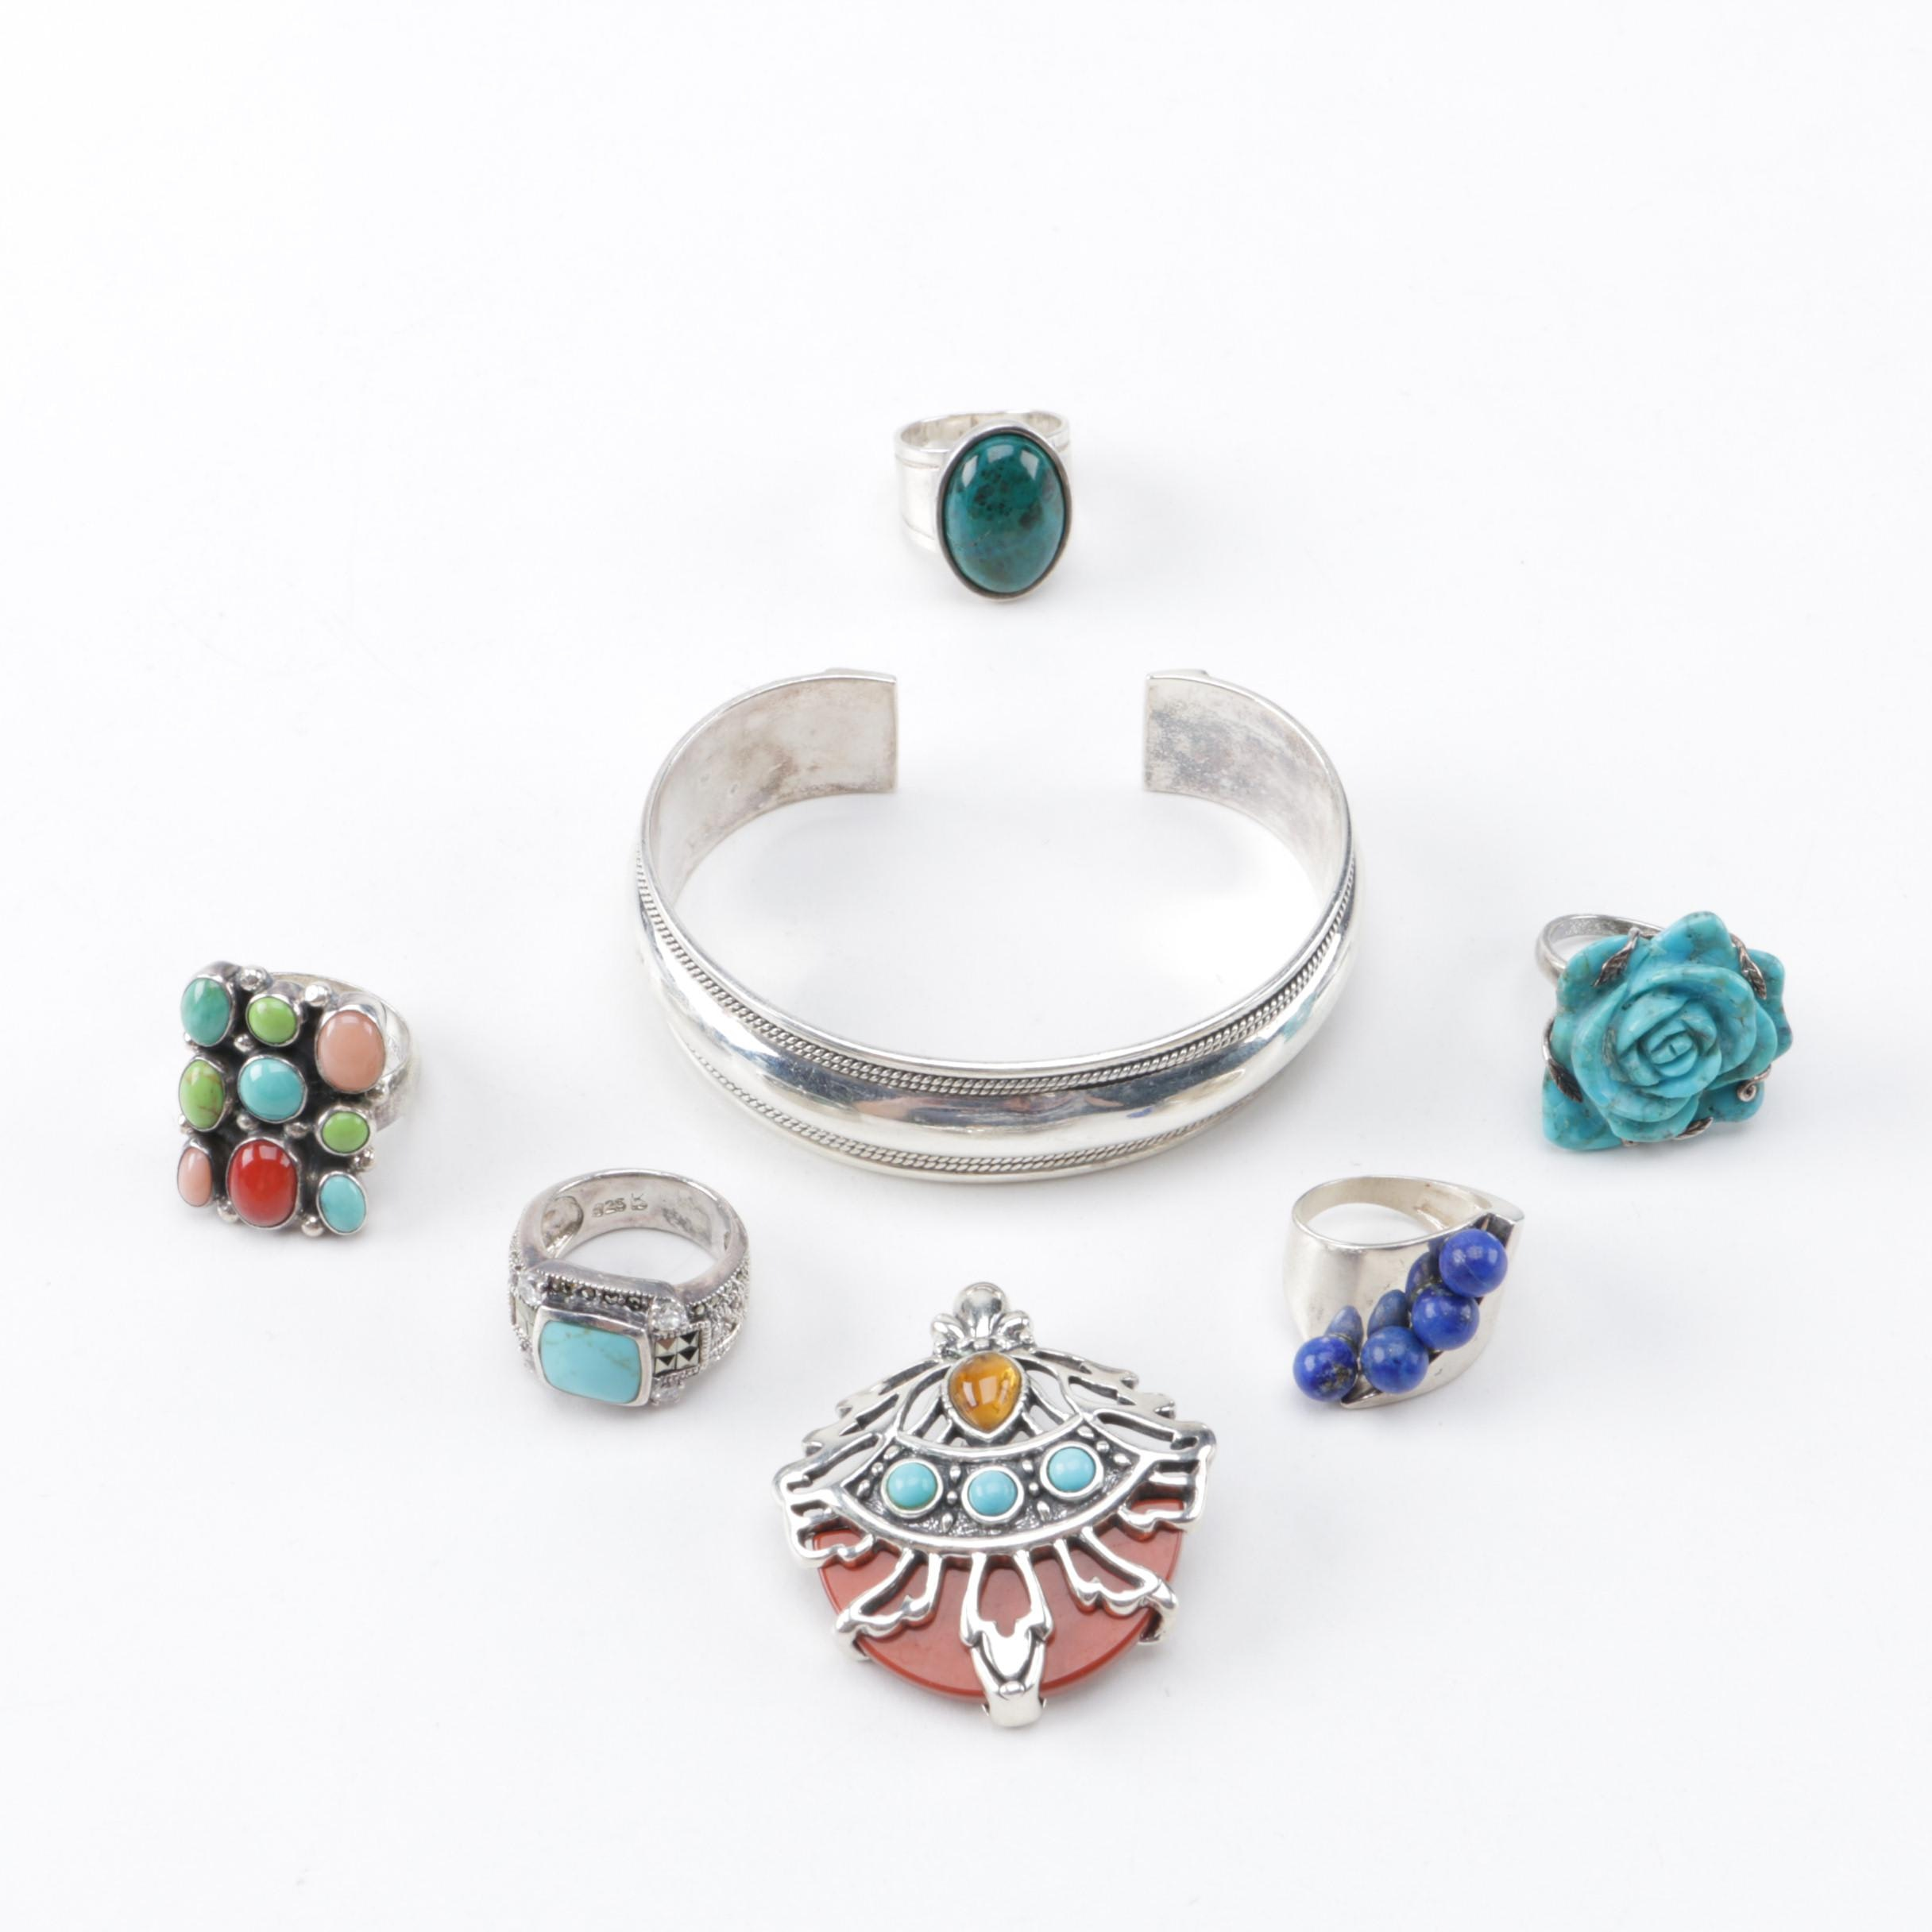 Sterling Silver Gemstone Jewelry Assortment Featuring Carolyn Pollack